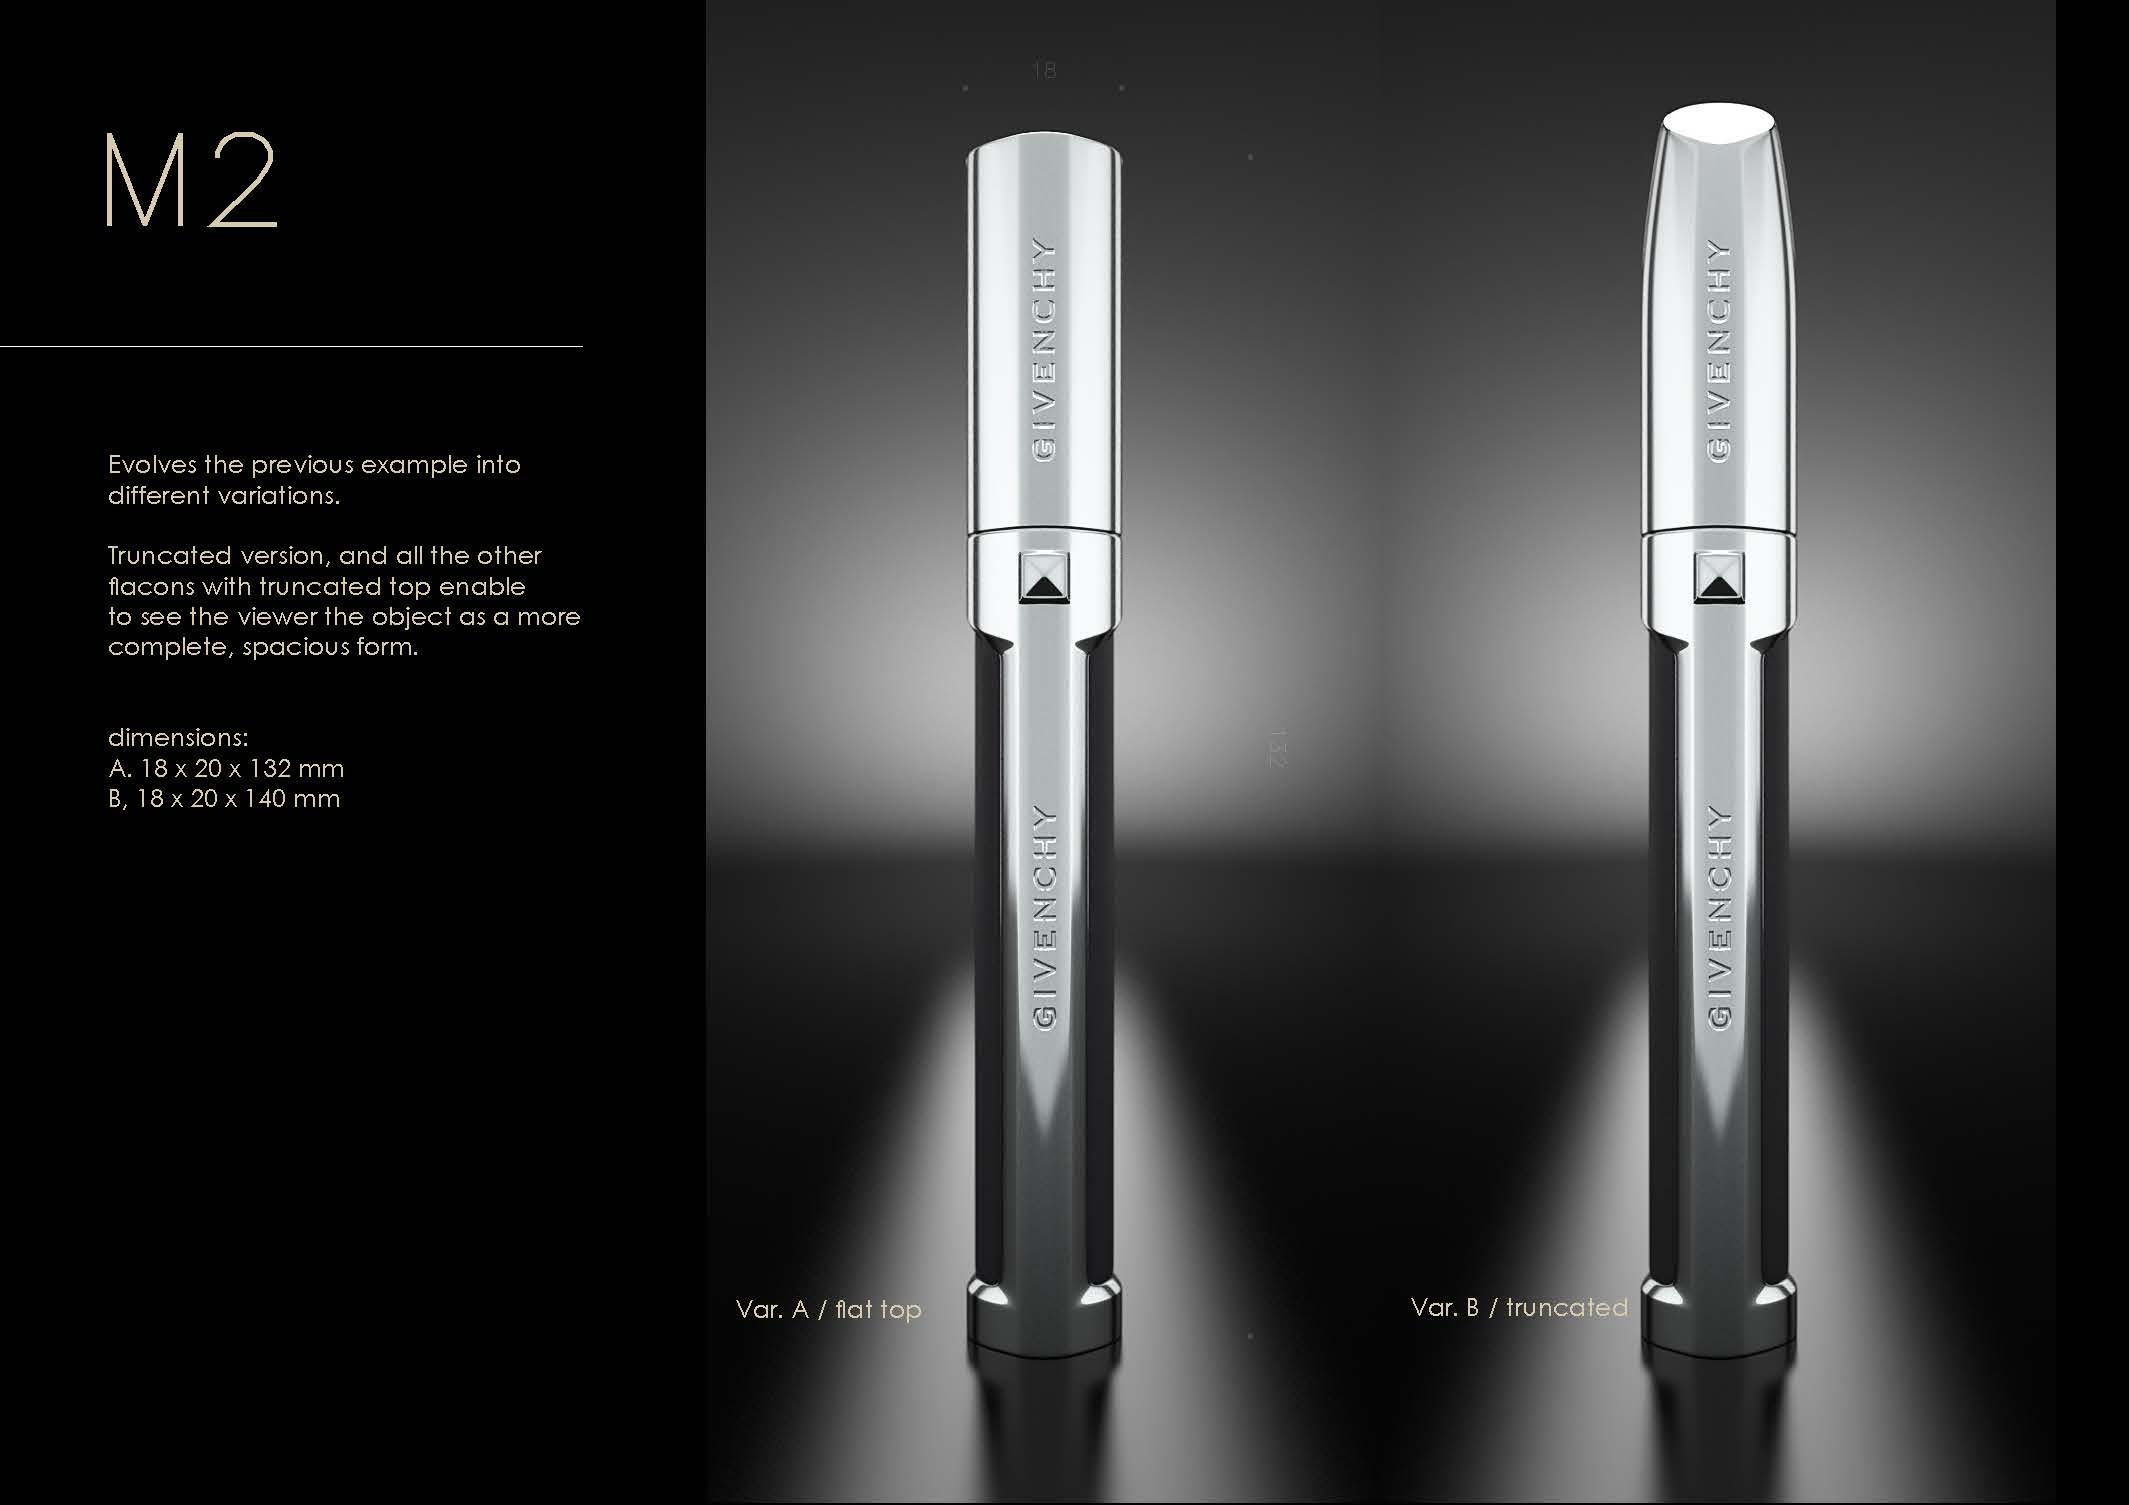 Givenchy mascaras w dimensions, I_Page_07.jpg